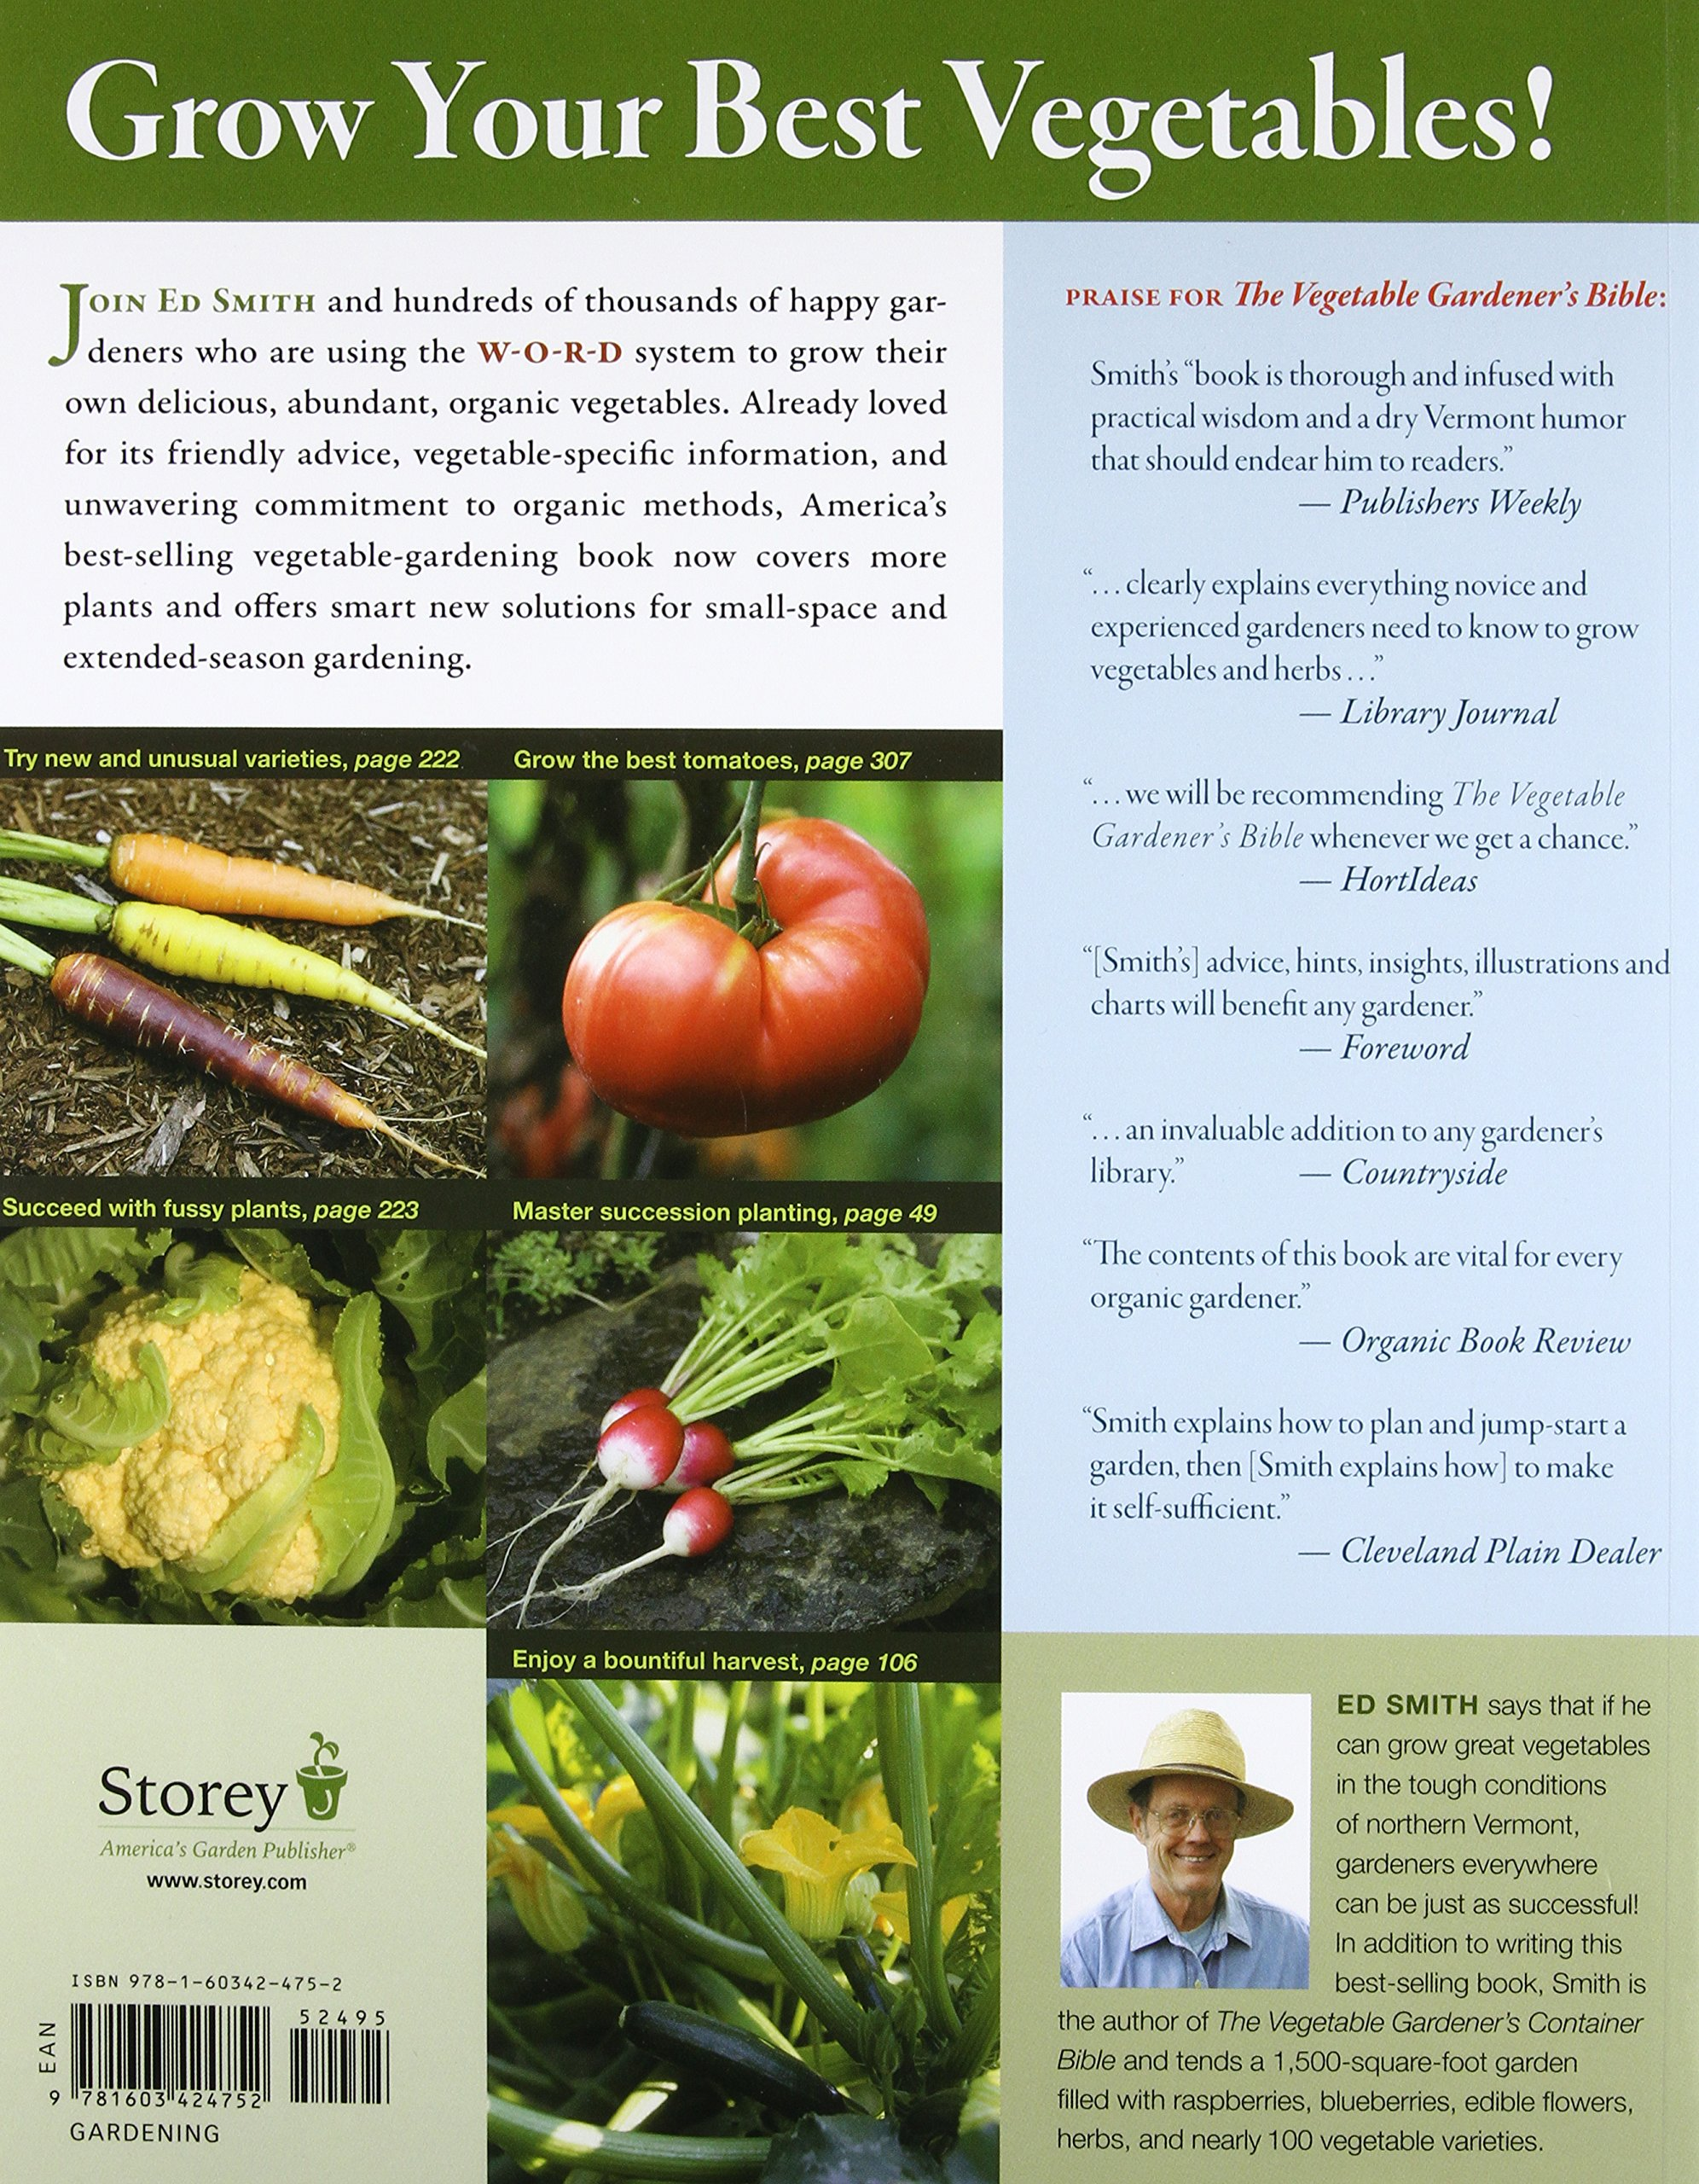 The Ve able Gardener s Bible 2nd Edition Discover Ed s High Yield W O R D System for All North American Gardening Regions Wide Rows Organic Methods